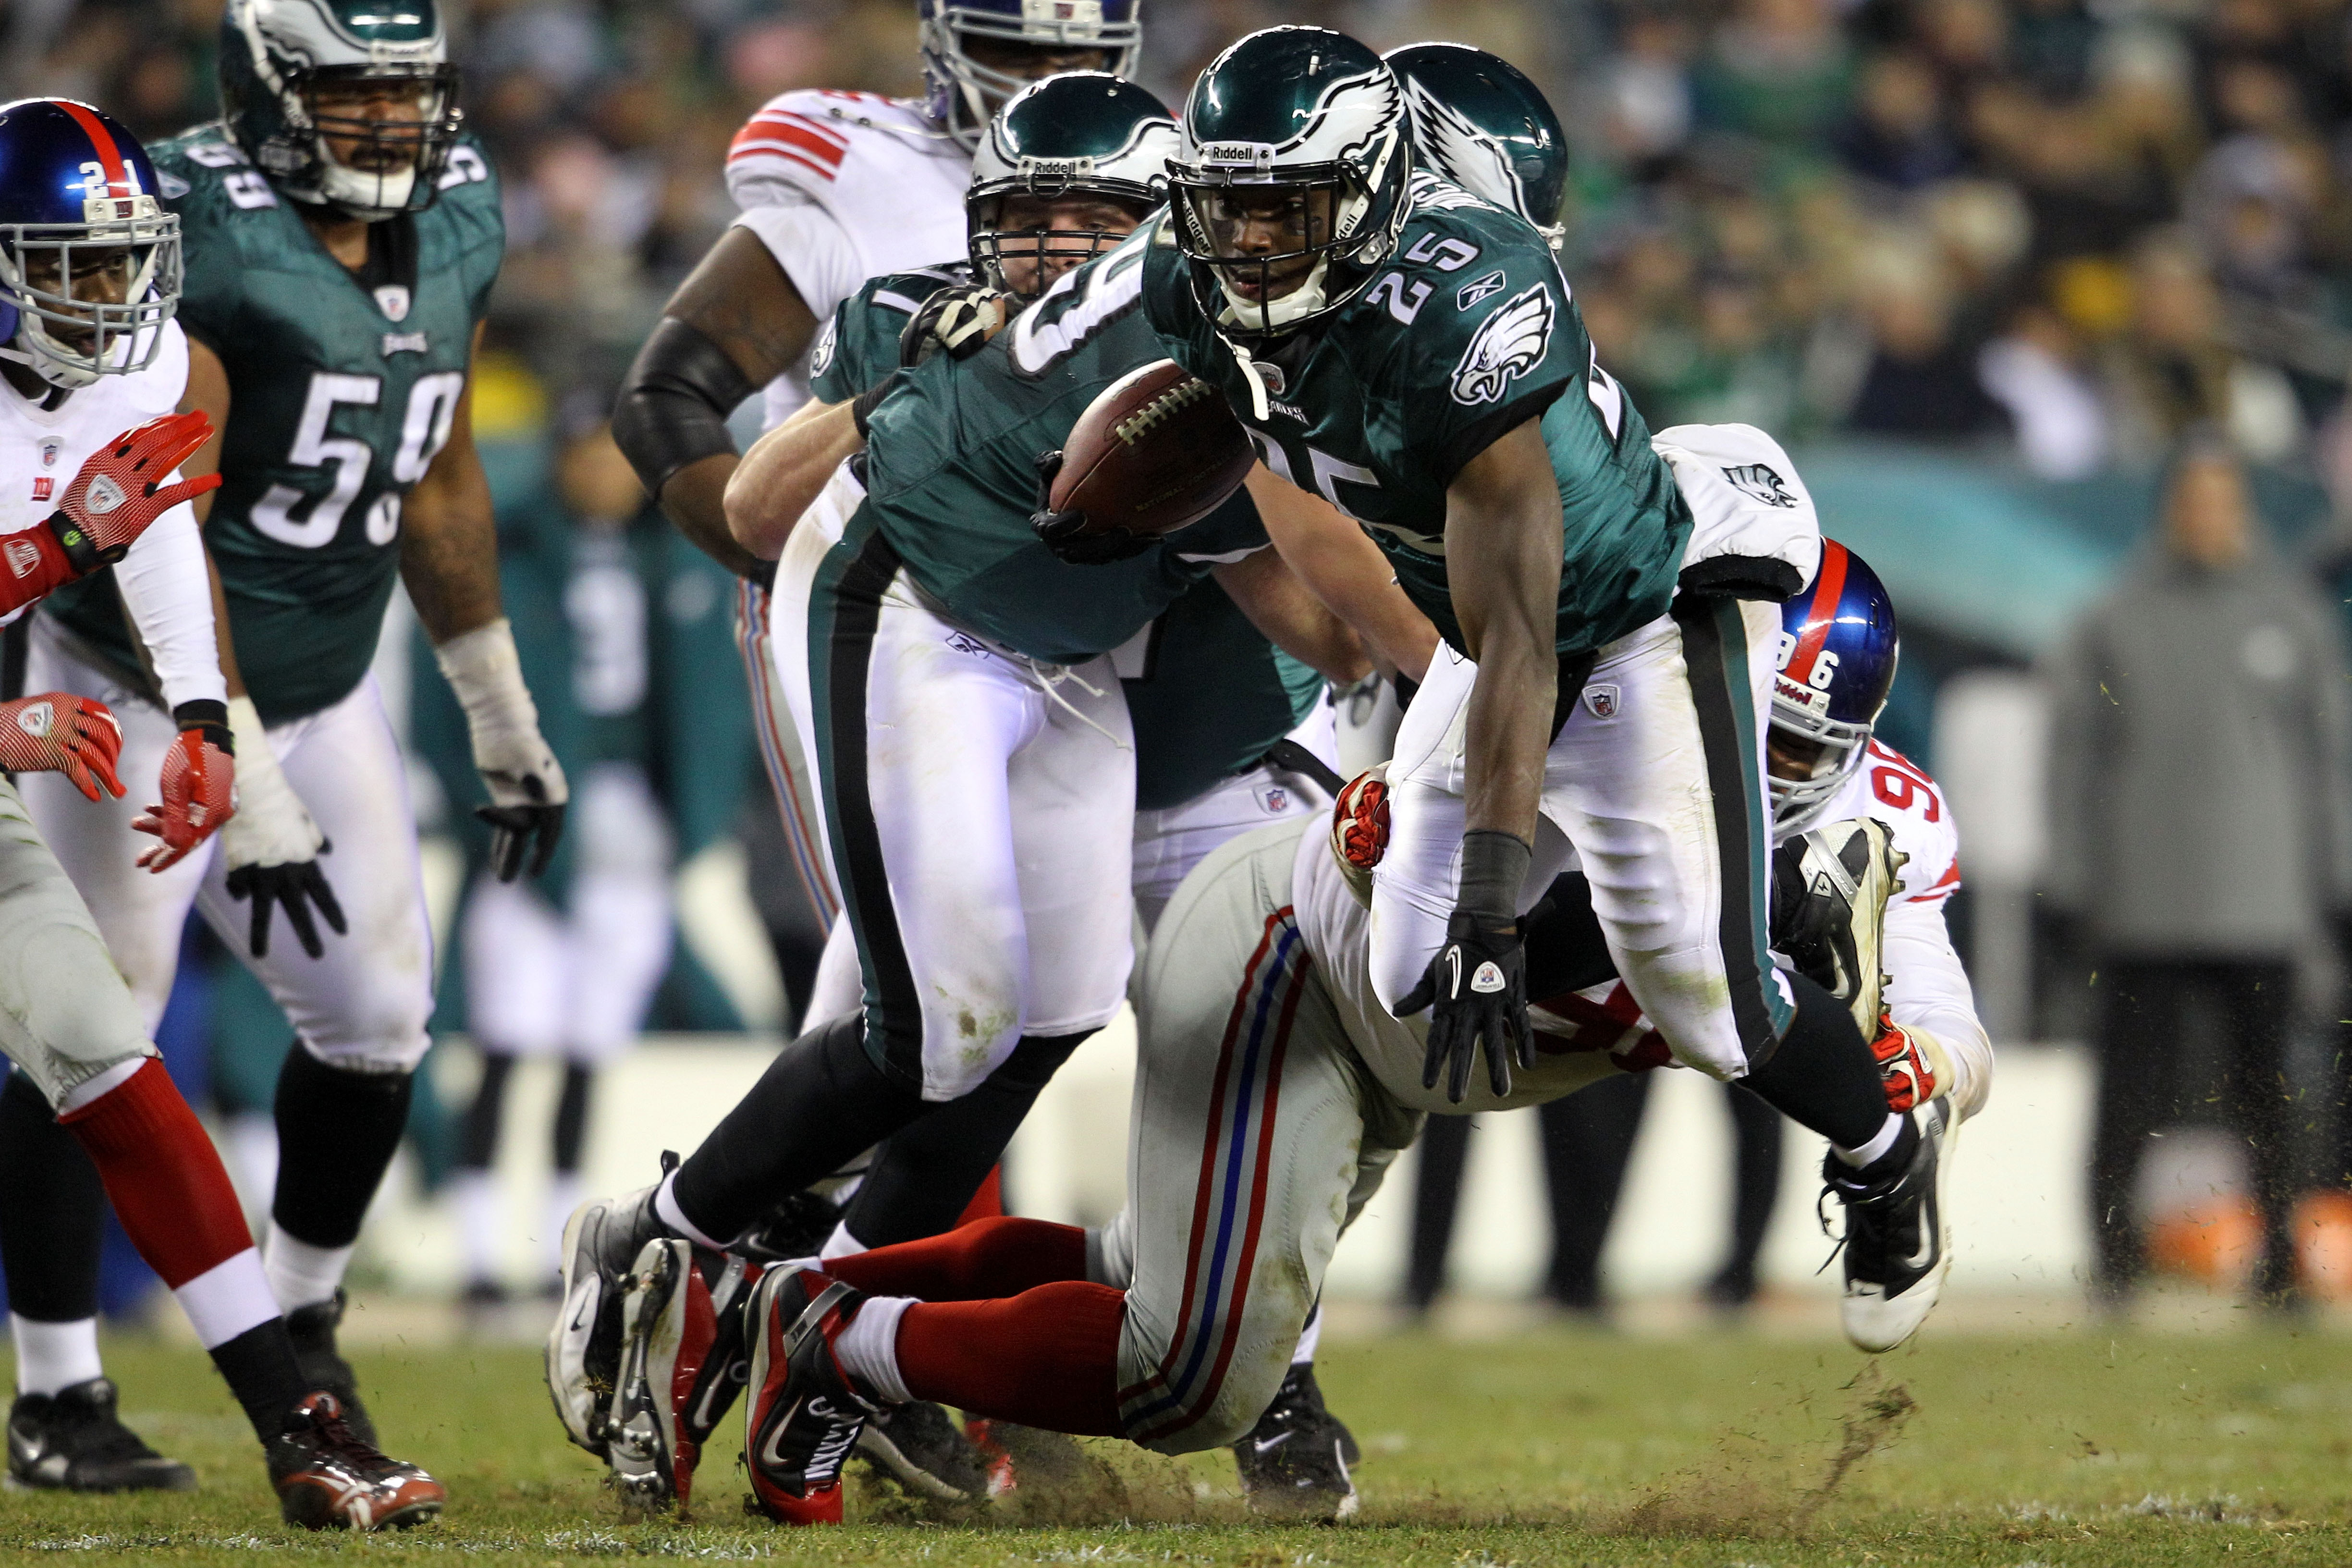 PHILADELPHIA - NOVEMBER 21:  LeSean McCoy #25 of the Philadelphia Eagles gets tripped up by Barry Cofield #96 of the New York Giants at Lincoln Financial Field on November 21, 2010 in Philadelphia, Pennsylvania.  (Photo by Michael Heiman/Getty Images)